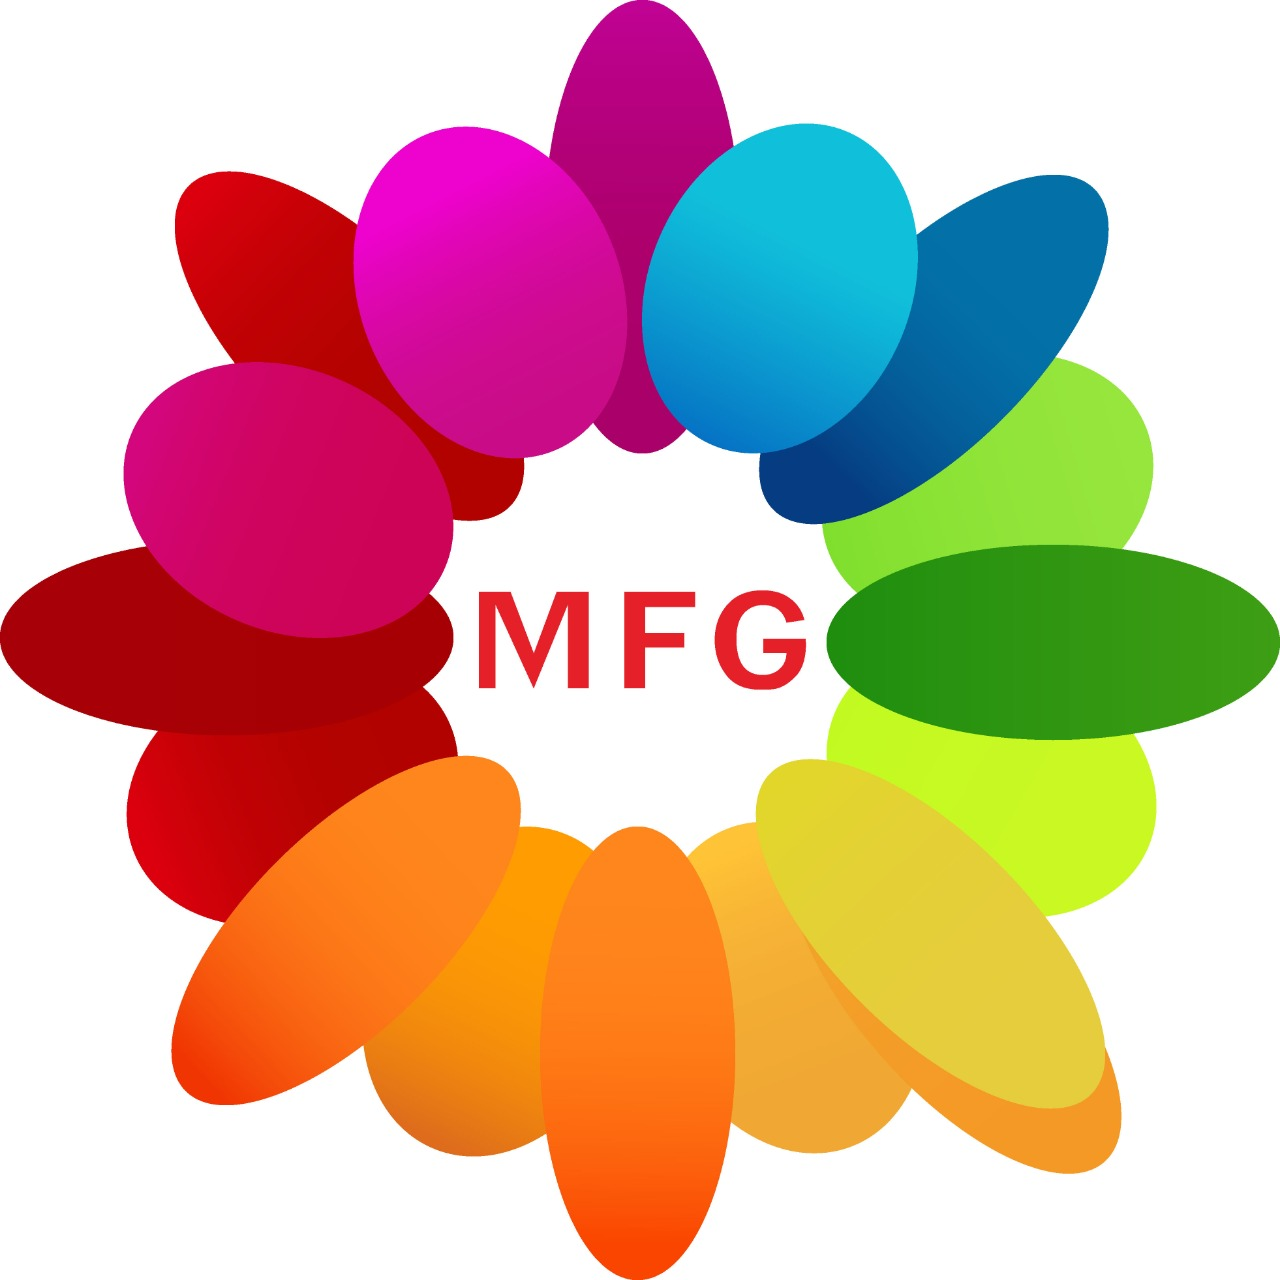 Red velvet Heart shape premium quality 1 kg cake with red roses topping